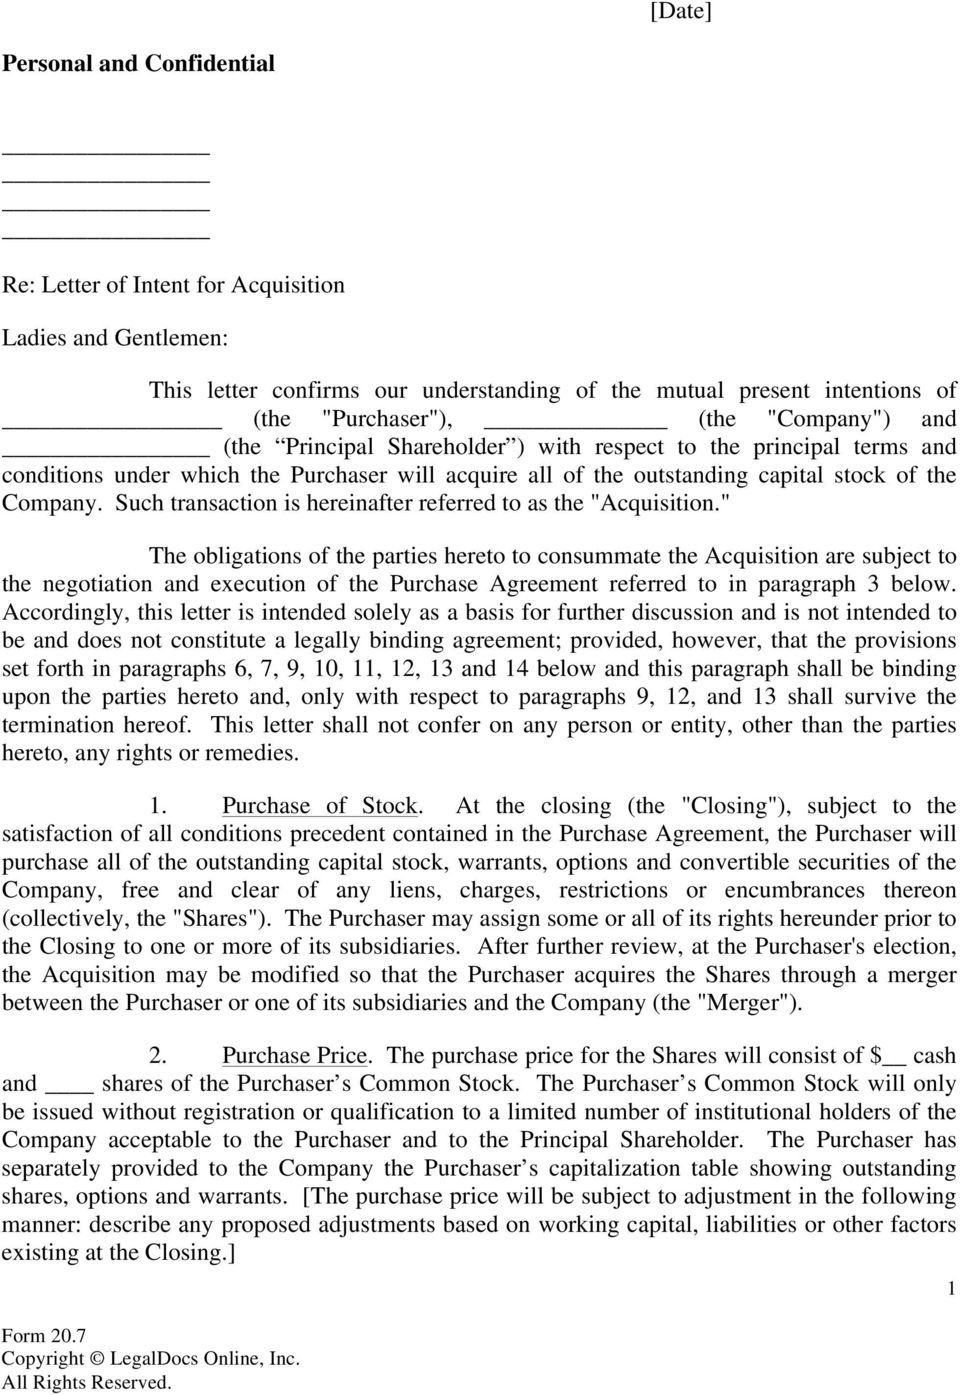 Letter Of Intent For Acquisition Purchase Of Stock Of The Business